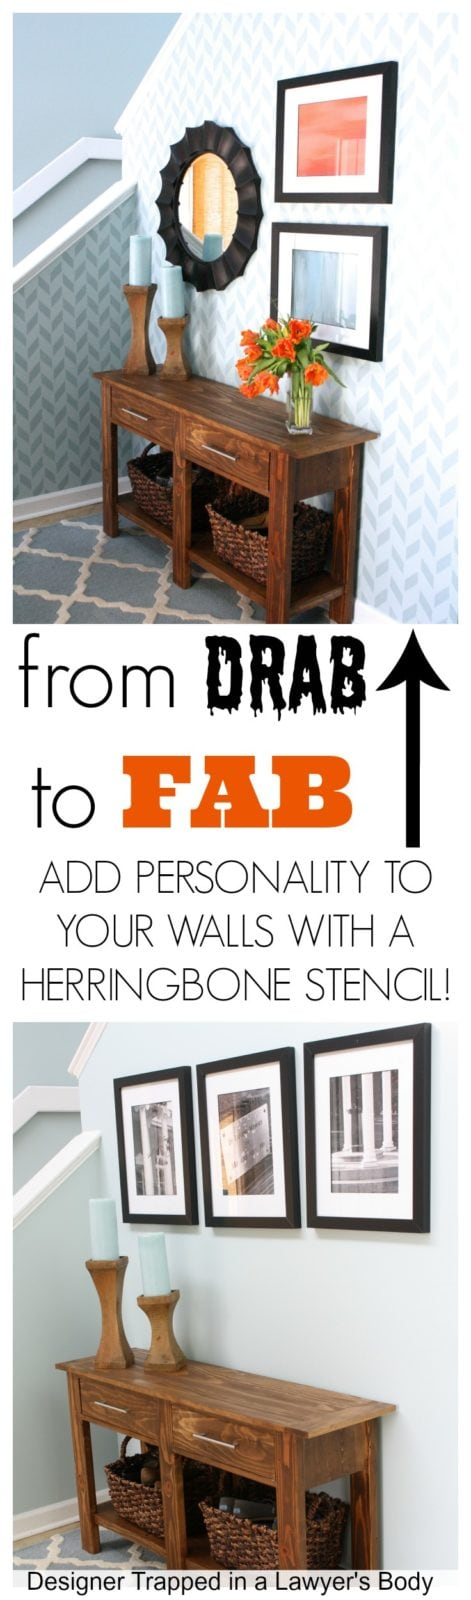 DIY Herringbone Stenciled Wall by Designer Trapped in a Lawyer's Body {www.designertrapped.com}